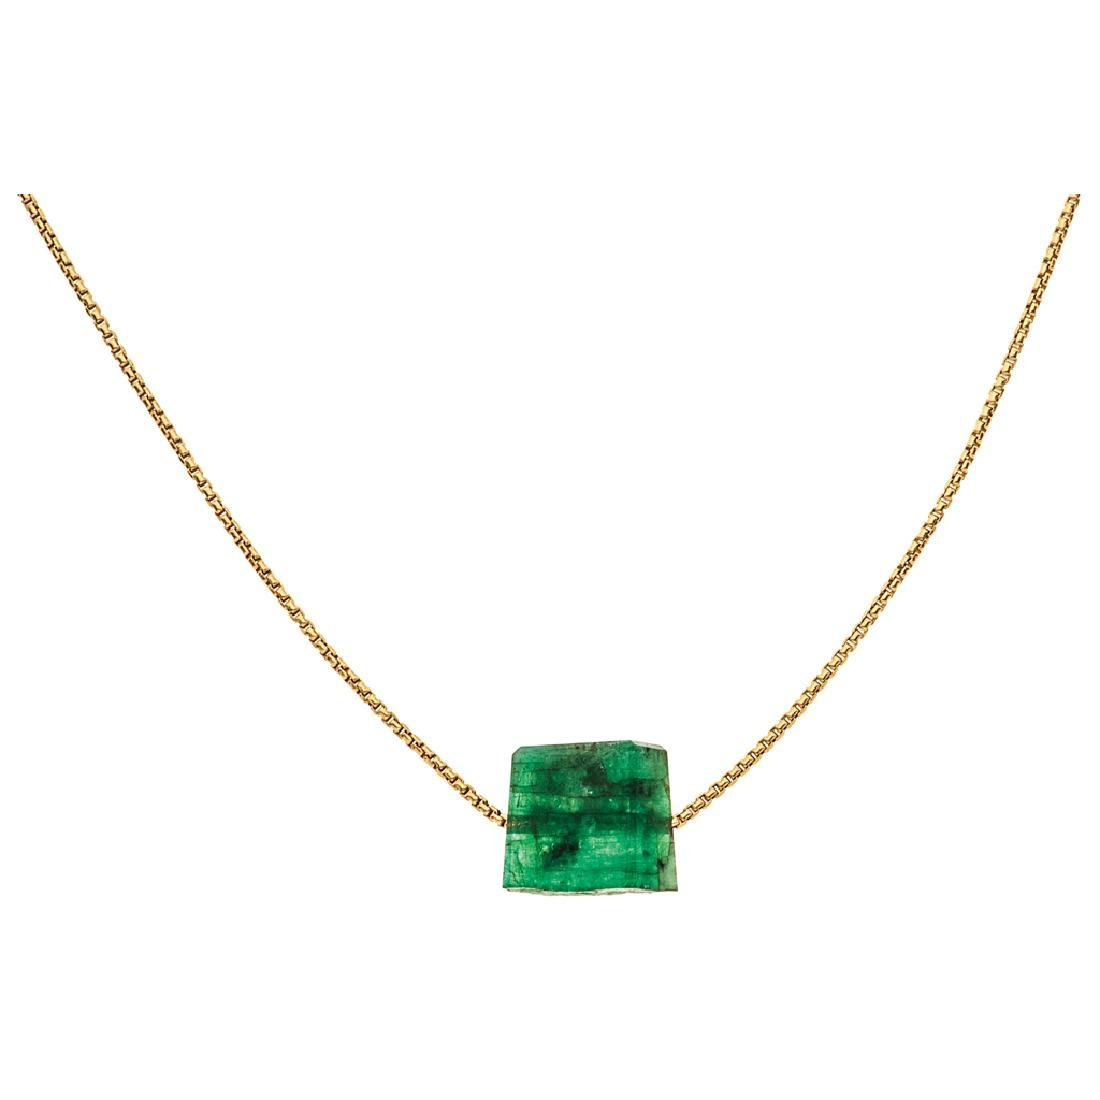 An 18K yellow gold necklace with 1 faceted beryl.